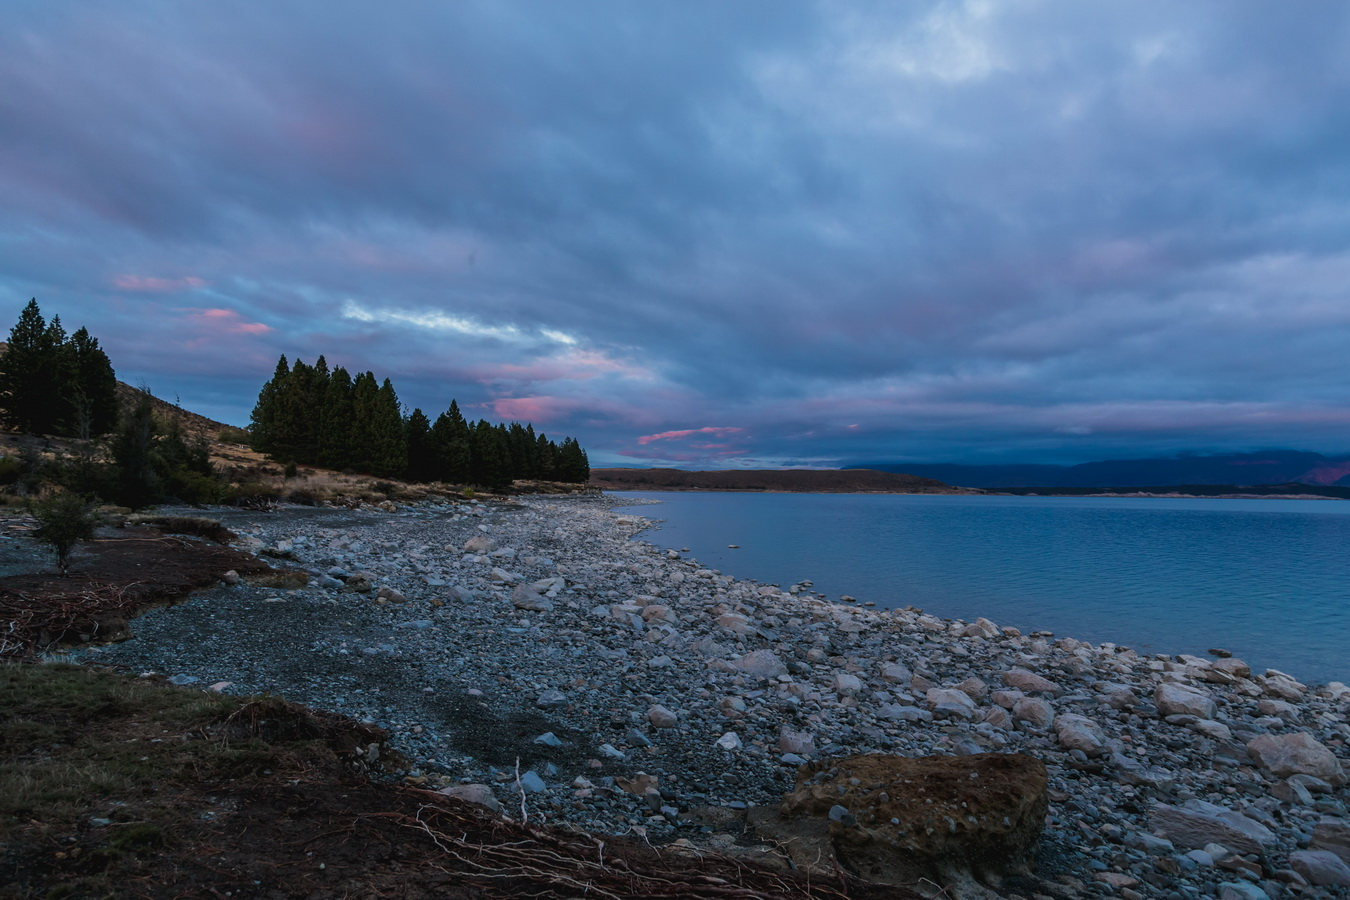 sunset, Lake Pukaki, Mount Cook National Park, South Island ,New Zealand